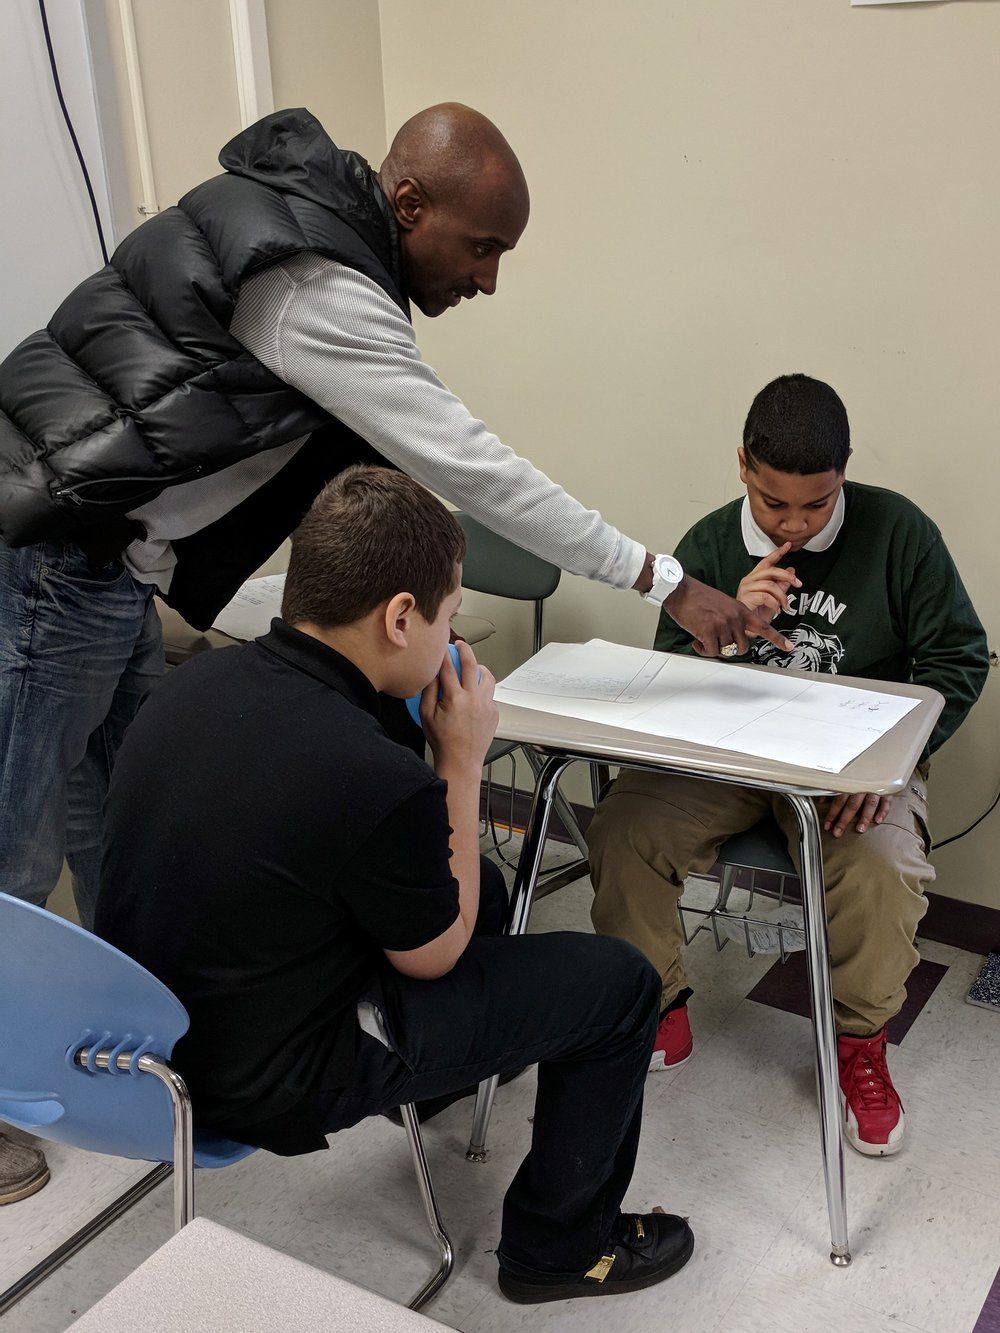 ABOVE : VP of HoodRISE Global Inc.; Dr. Gerald Jarmon, assisting some of HoodRISE Academy's 7th grade boys that are working on the storyboard phase of their '16-barz In The Classroom' project, at Rowland School in Harrisburg, PA.